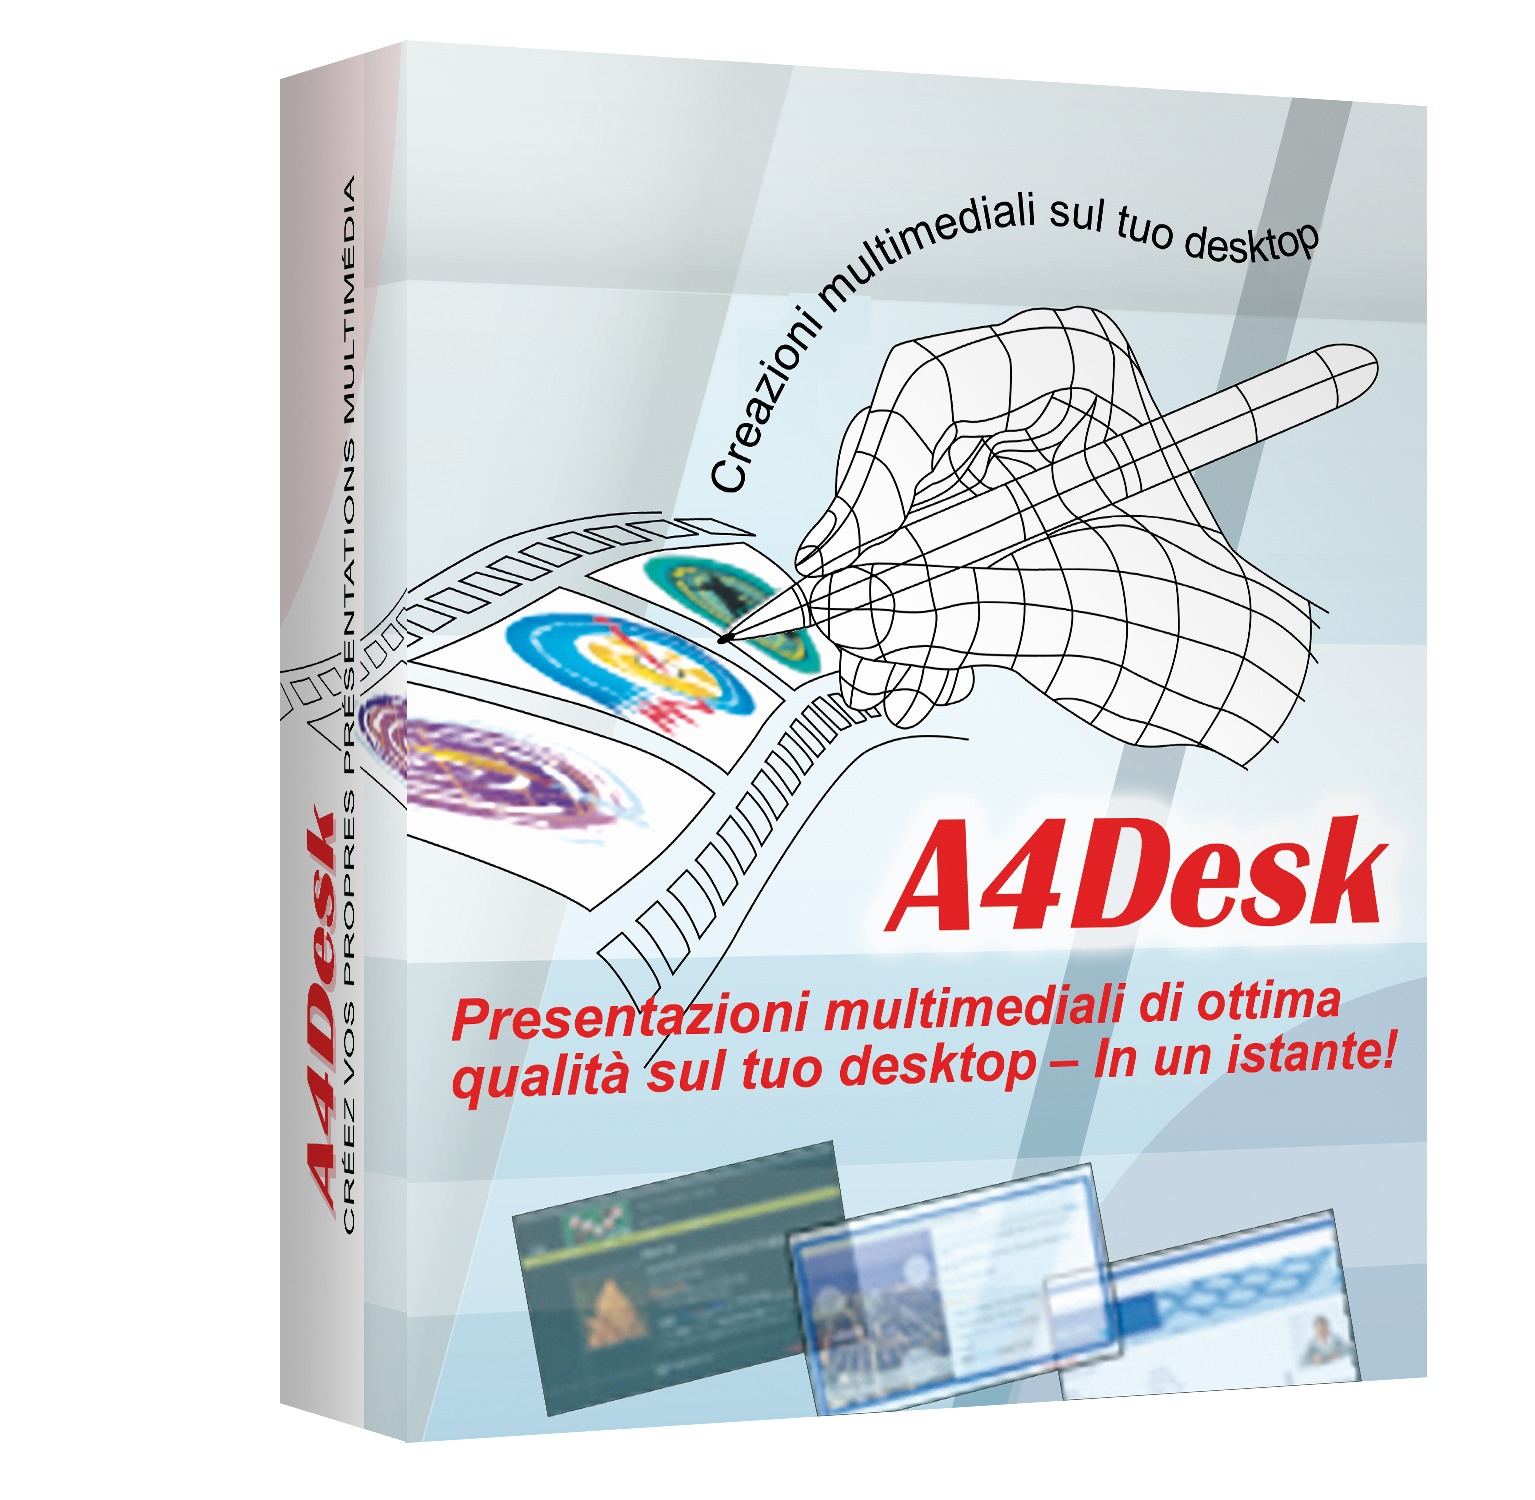 A4Desk Enterprise Edition